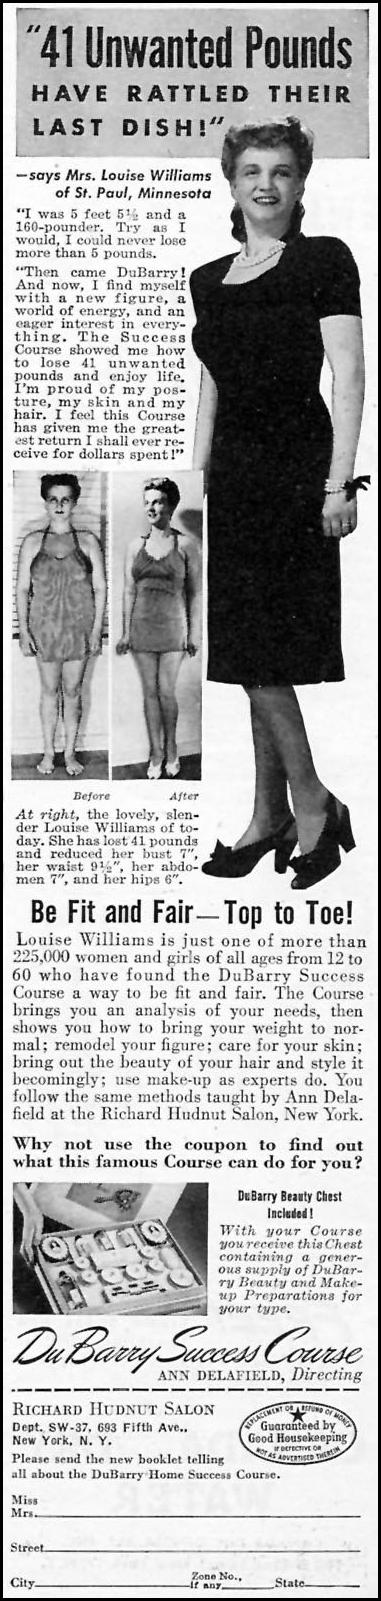 DUBARRY SUCCESS COURSE WOMAN'S DAY 09/01/1945 p. 95